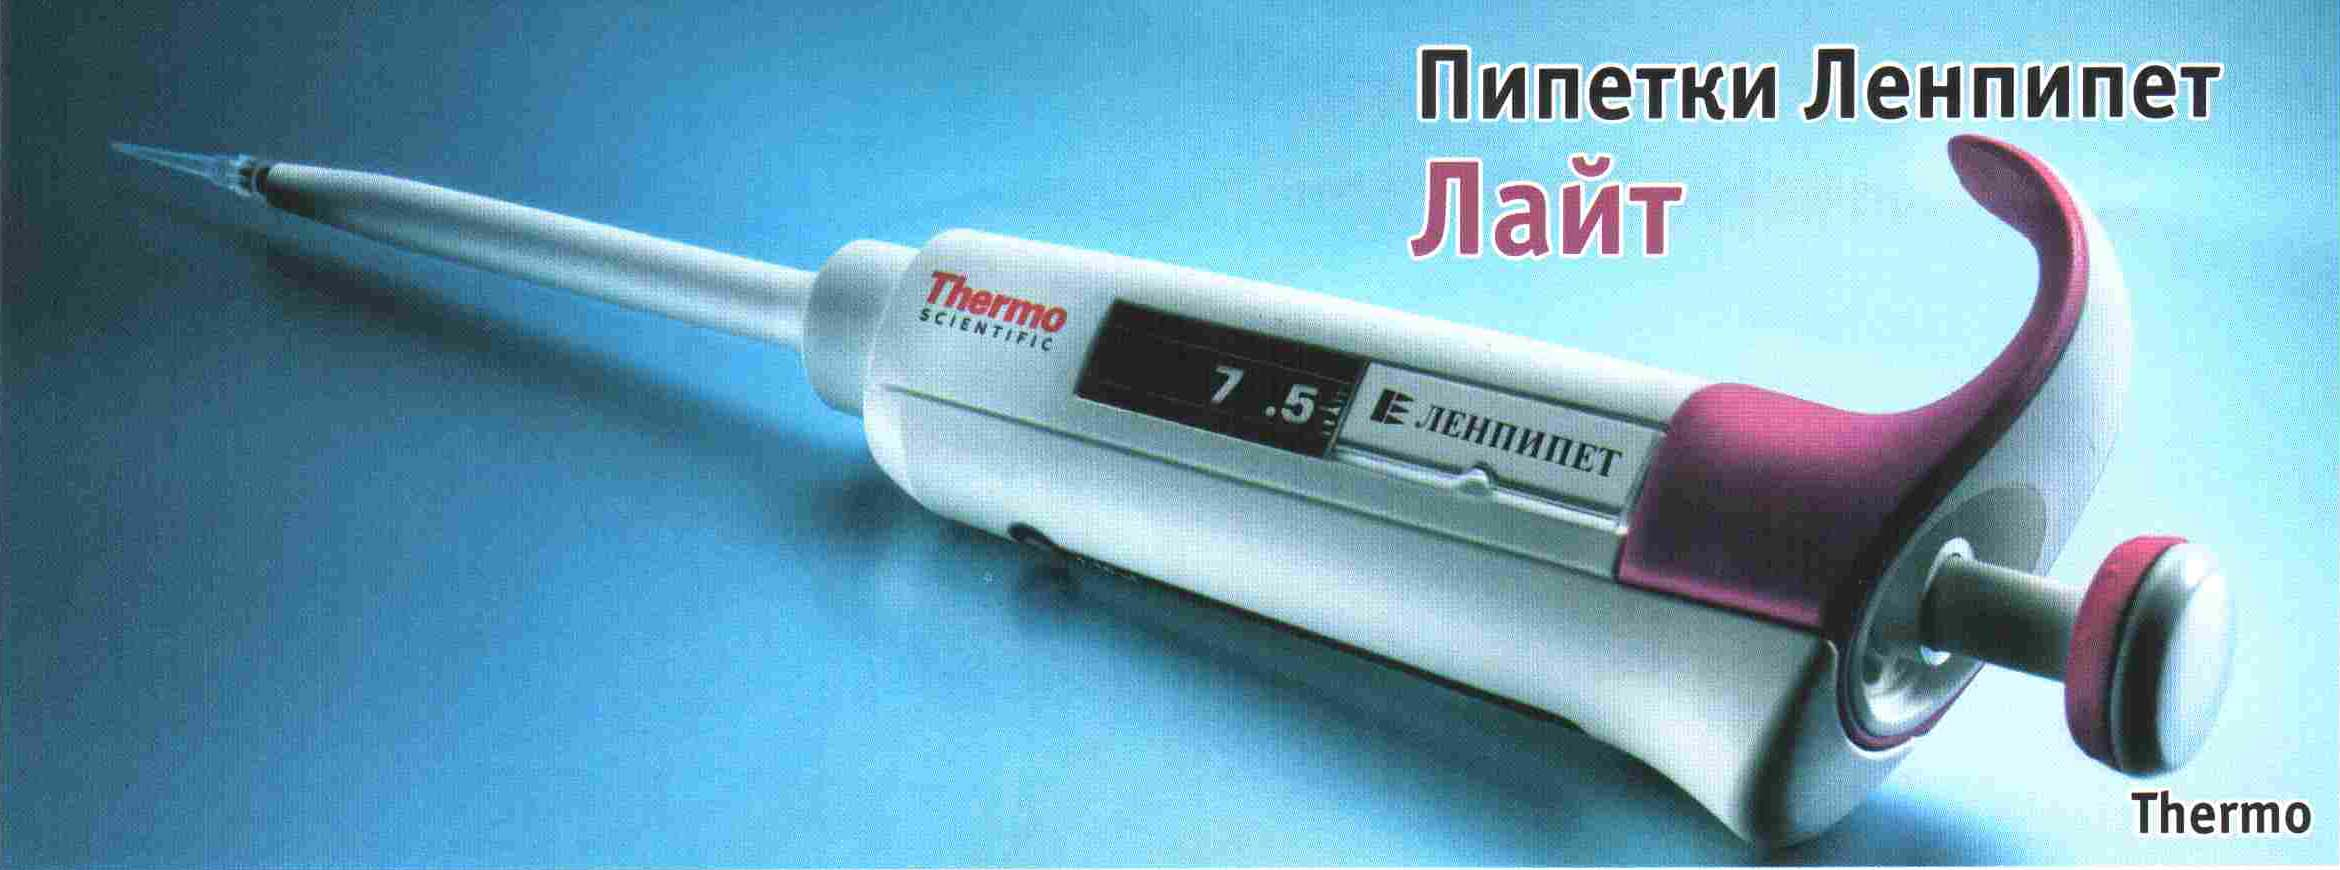 Микродозатор серии Лайт Thermo Fisher Scientific (812)336-48-39 ООО